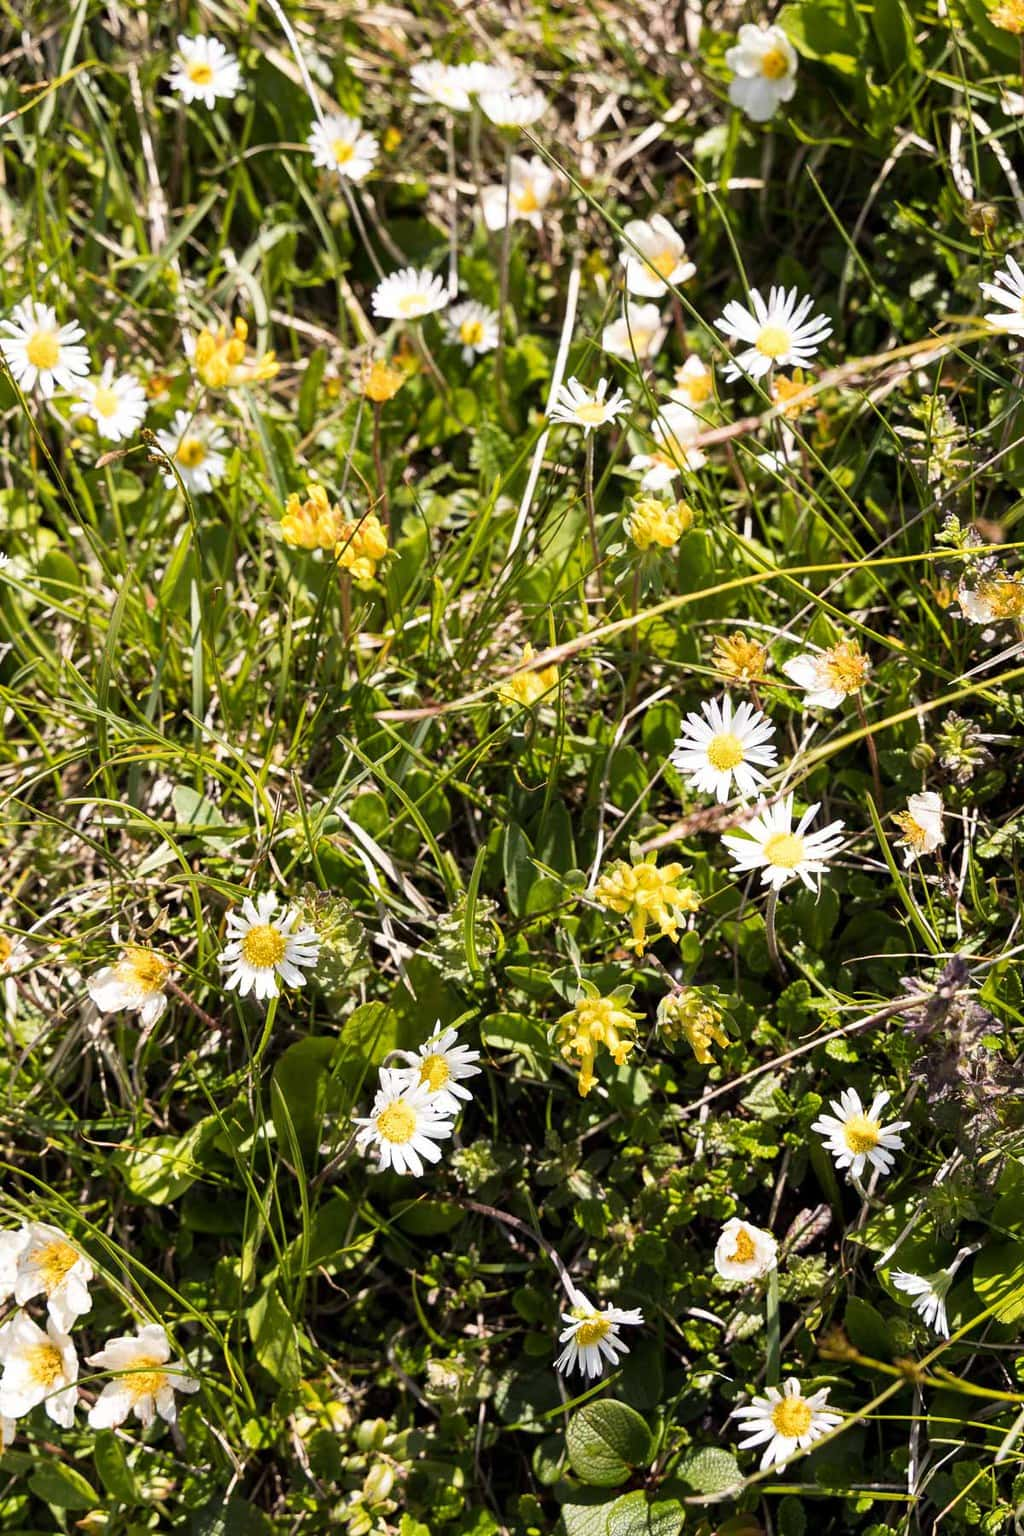 Vertical photo of wildflowers growing in the Alpine meadows above Le Tour, France.